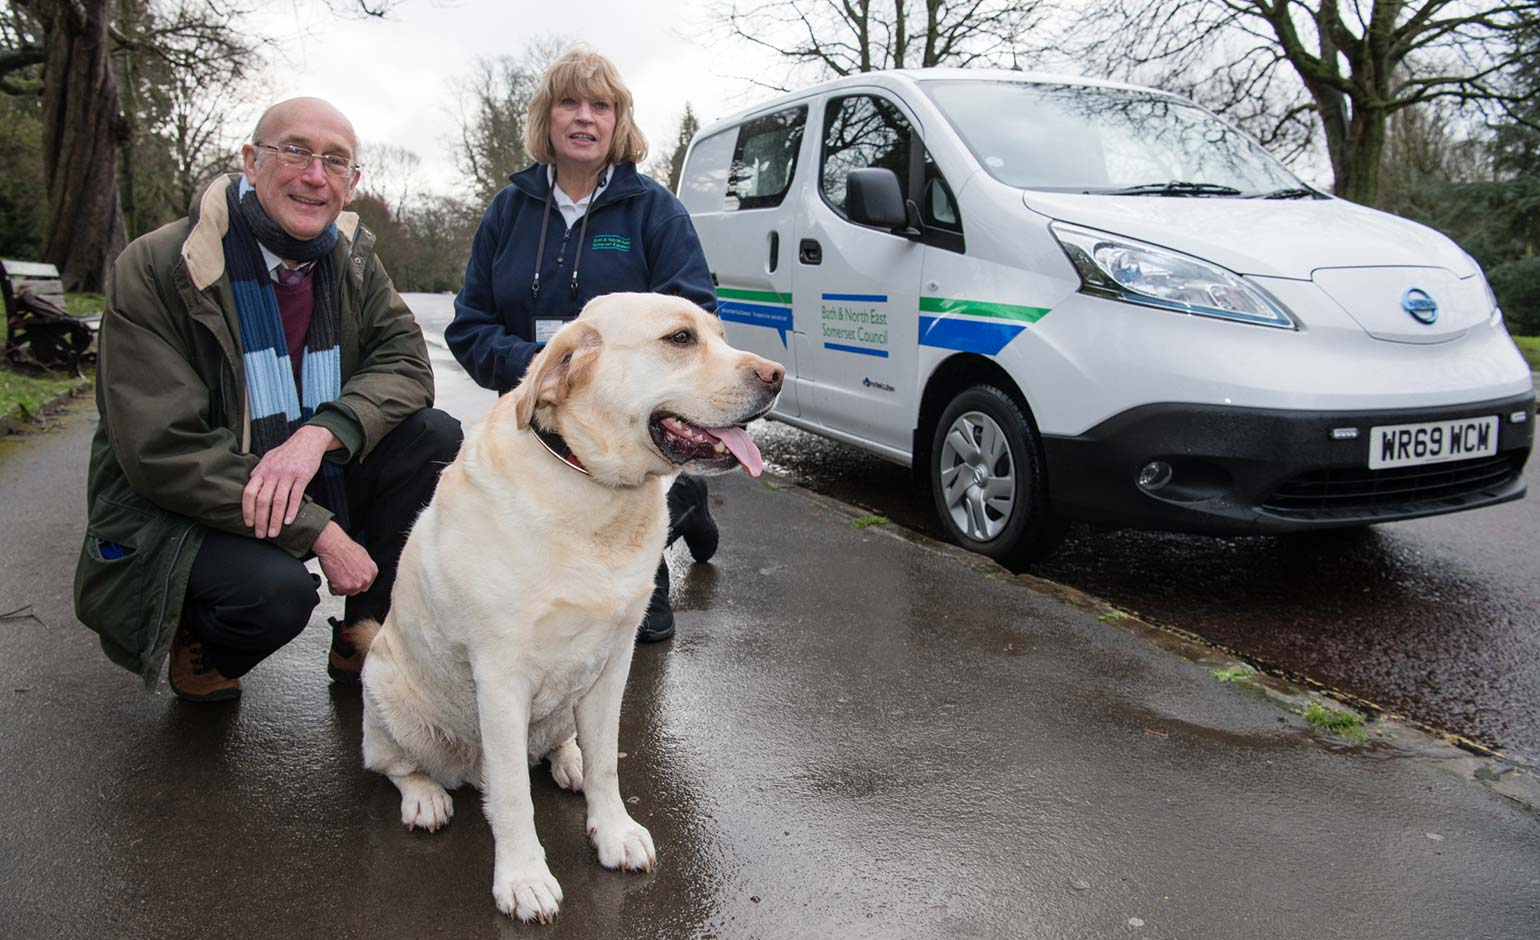 Dog warden set to patrol the area in new green electric van thanks to grant